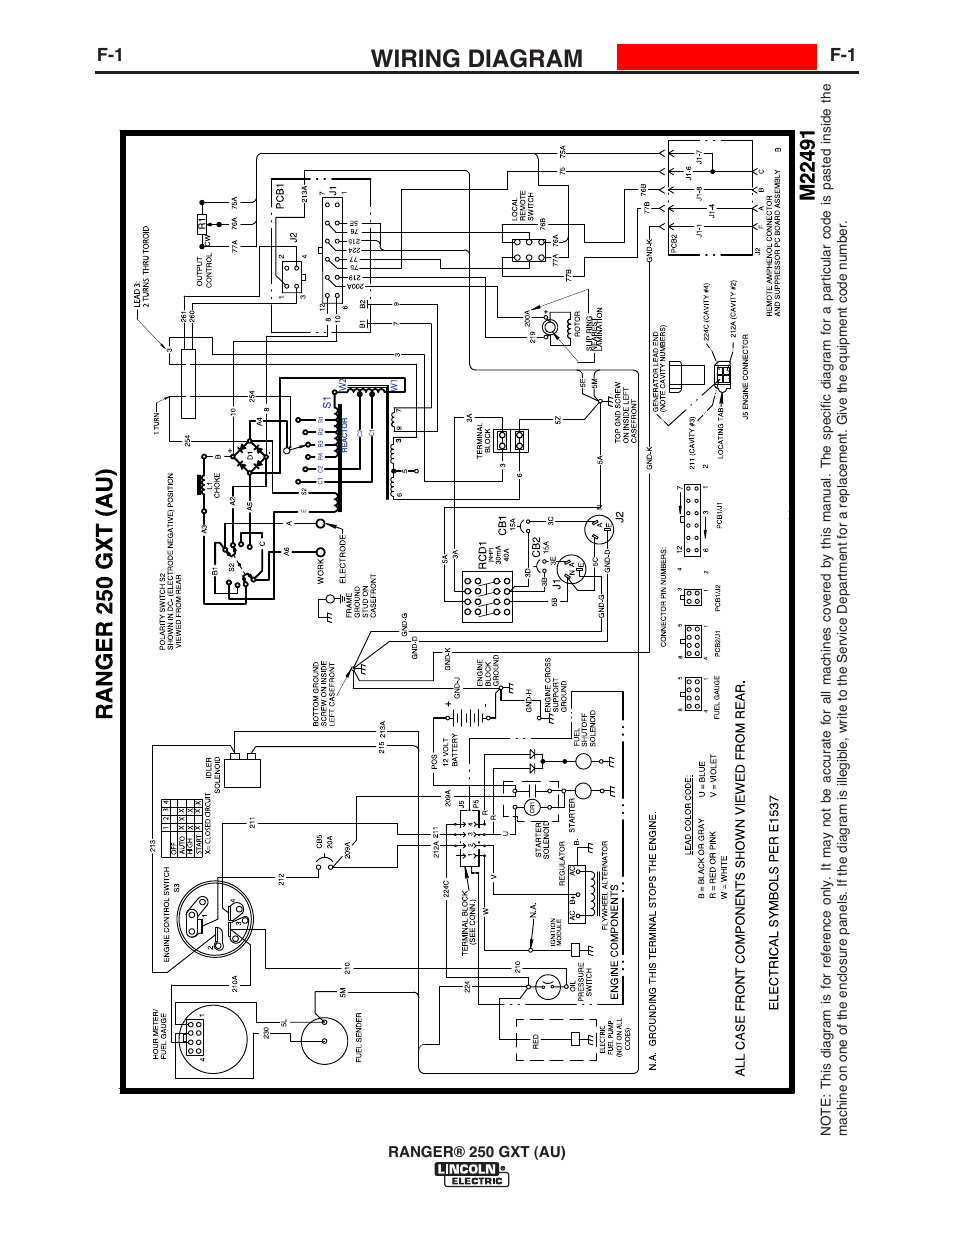 Wiring Diagram Lincoln Electric Im10052 Ranger 250 Gxt (au) User HVAC Wiring  Schematics Lincoln Wiring Schematics